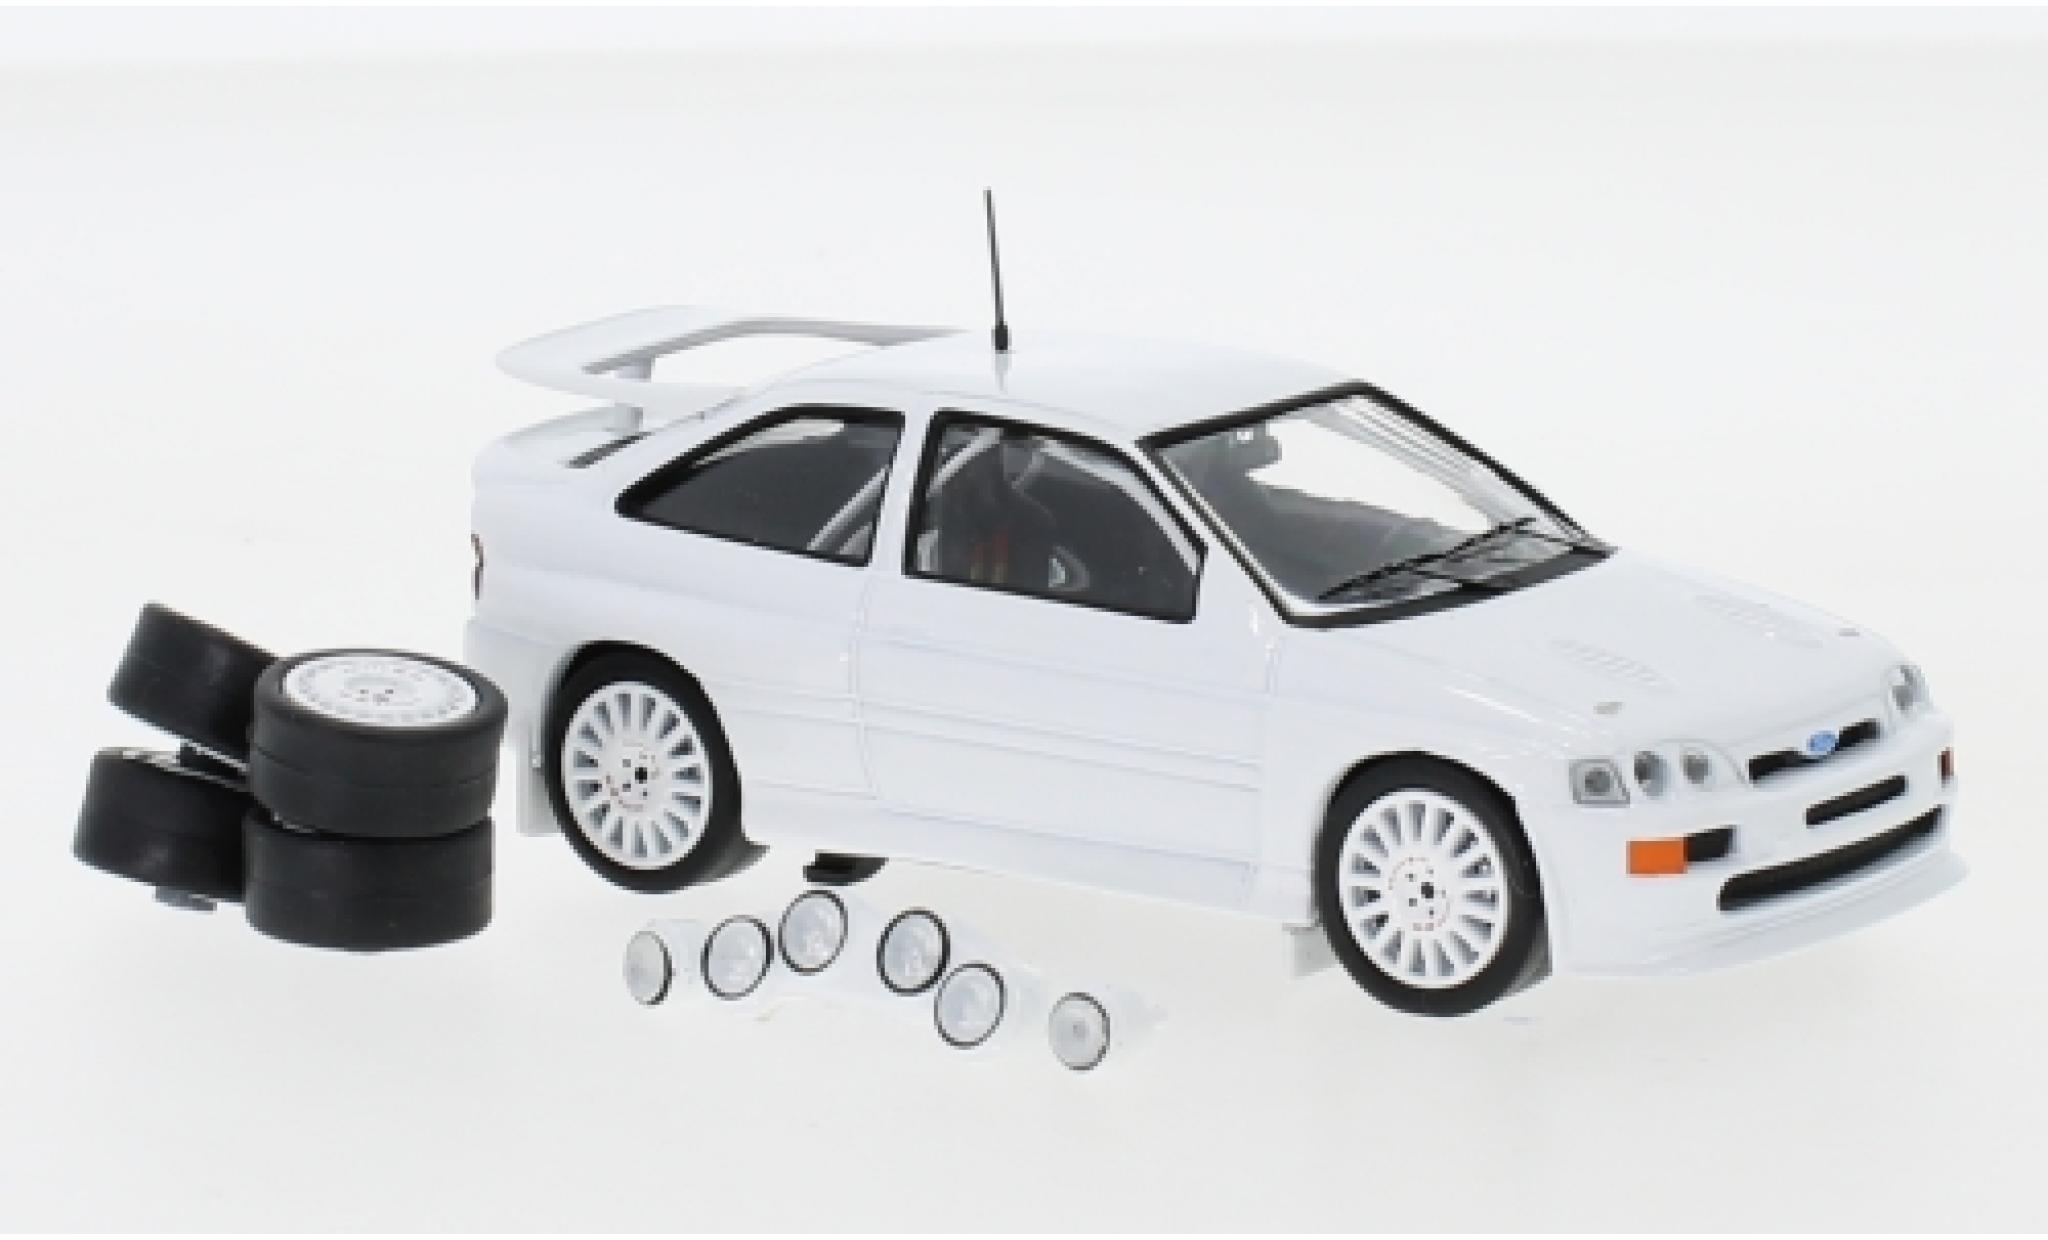 Ford Escort 1/43 IXO RS Cosworth blanche 1994 Plain Body Version y compris les 4 Ersatzräder et extra Scheinwerfer